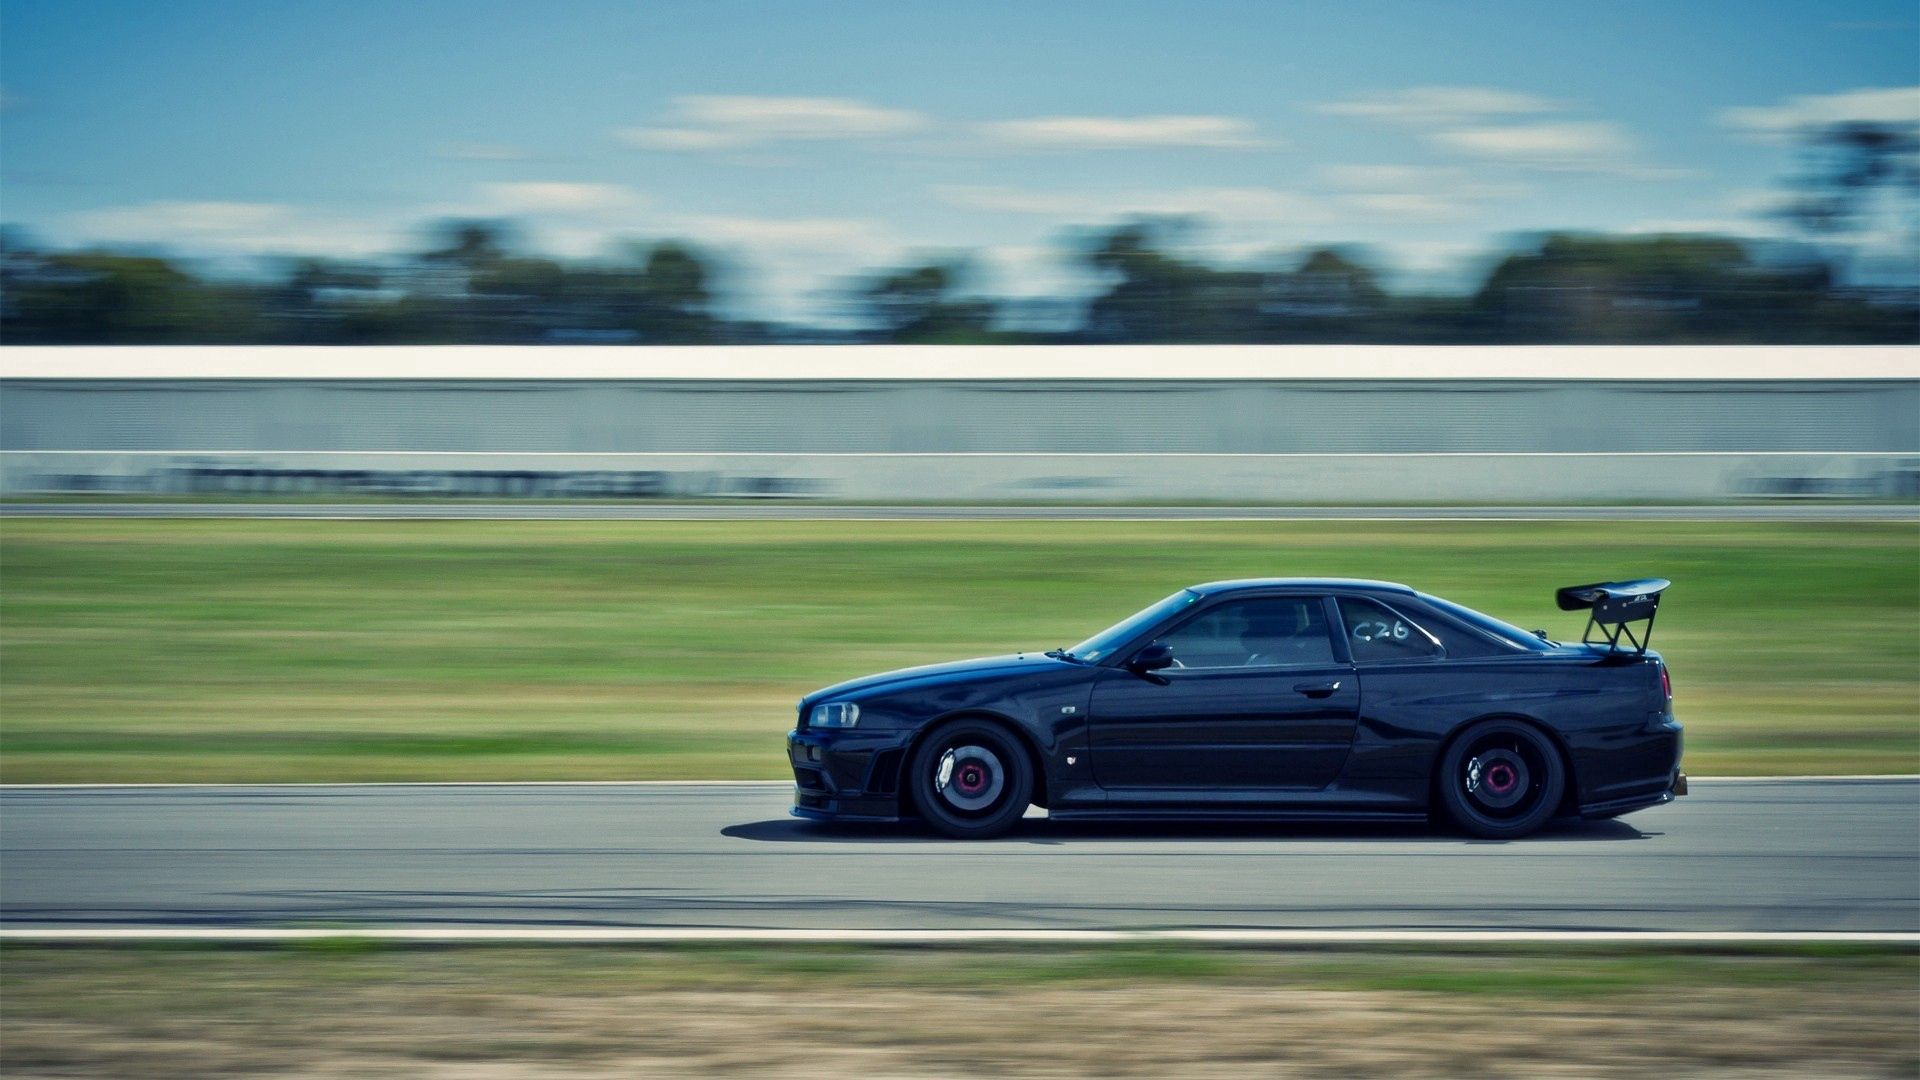 133954 download wallpaper Cars, Nissan, Nissan Skyline R34, Auto screensavers and pictures for free